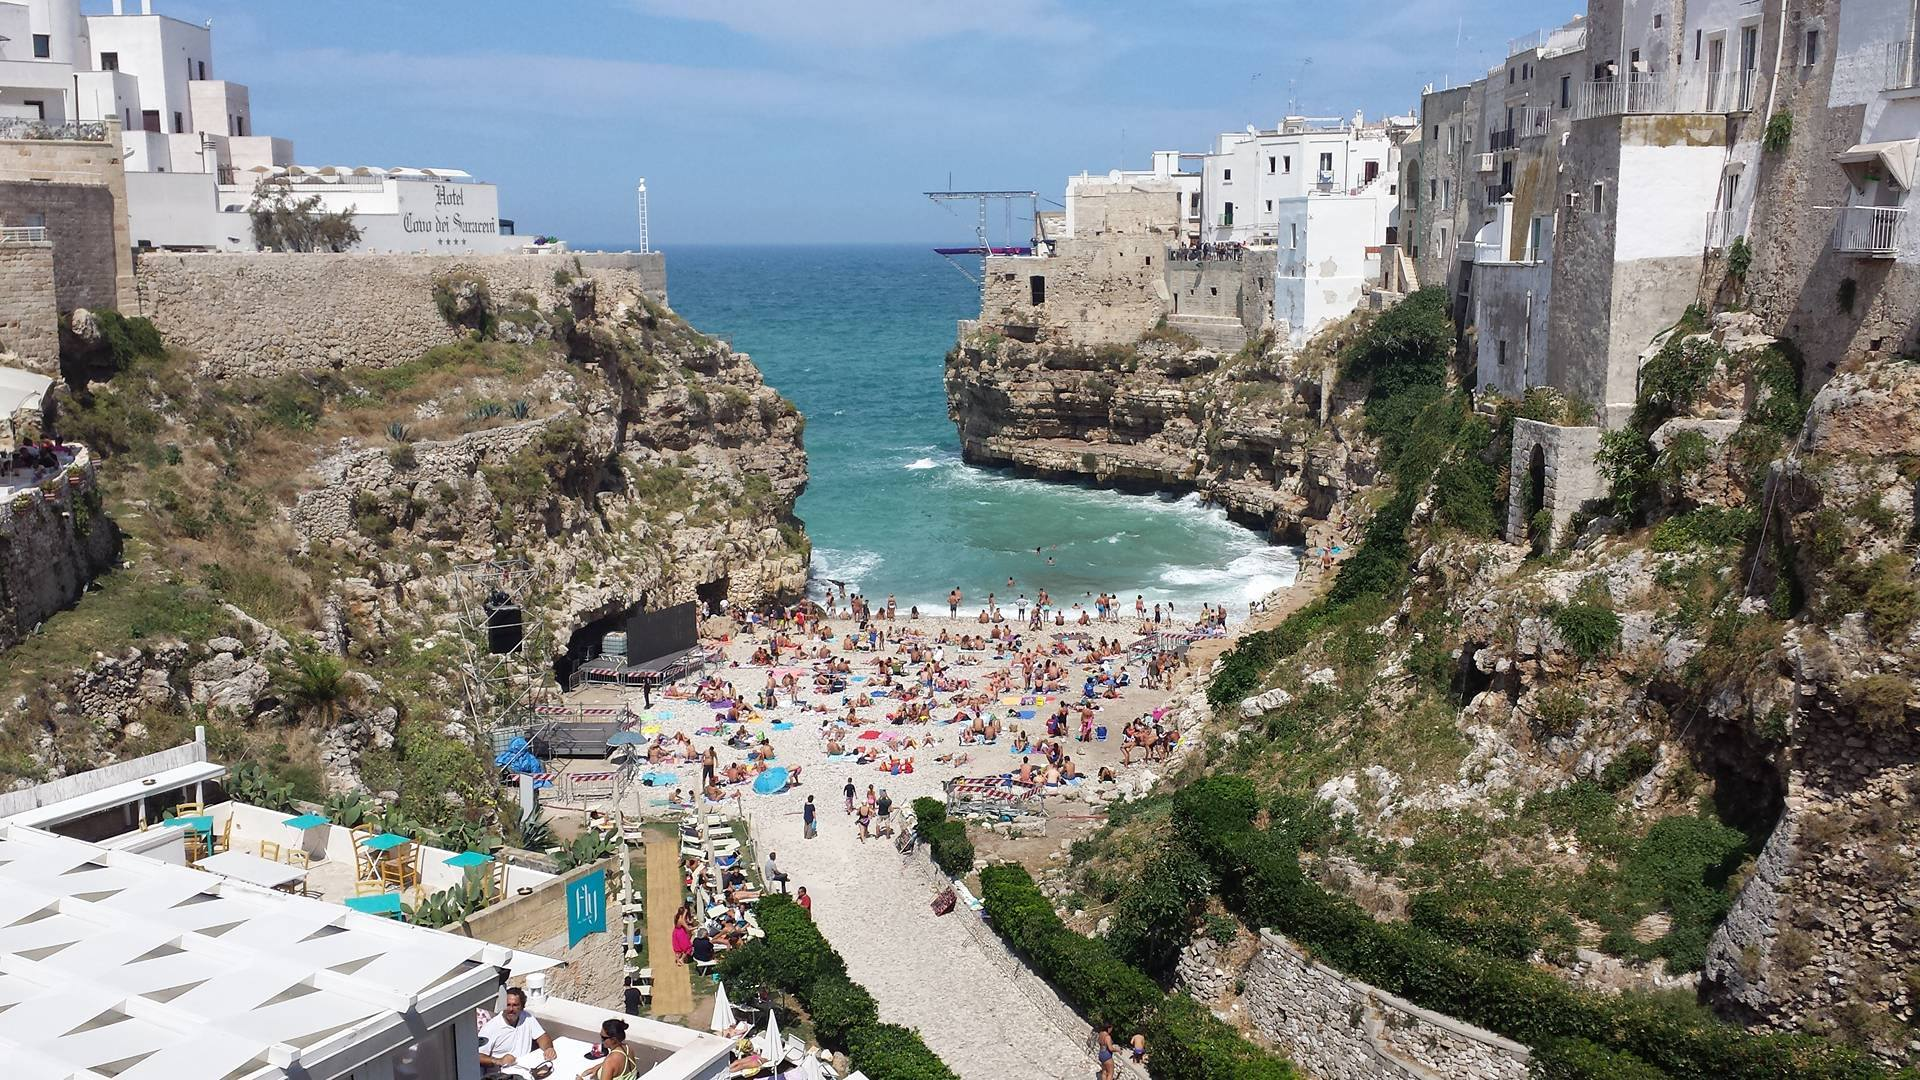 Tuffi: Red Bull cliff diving a Polignano